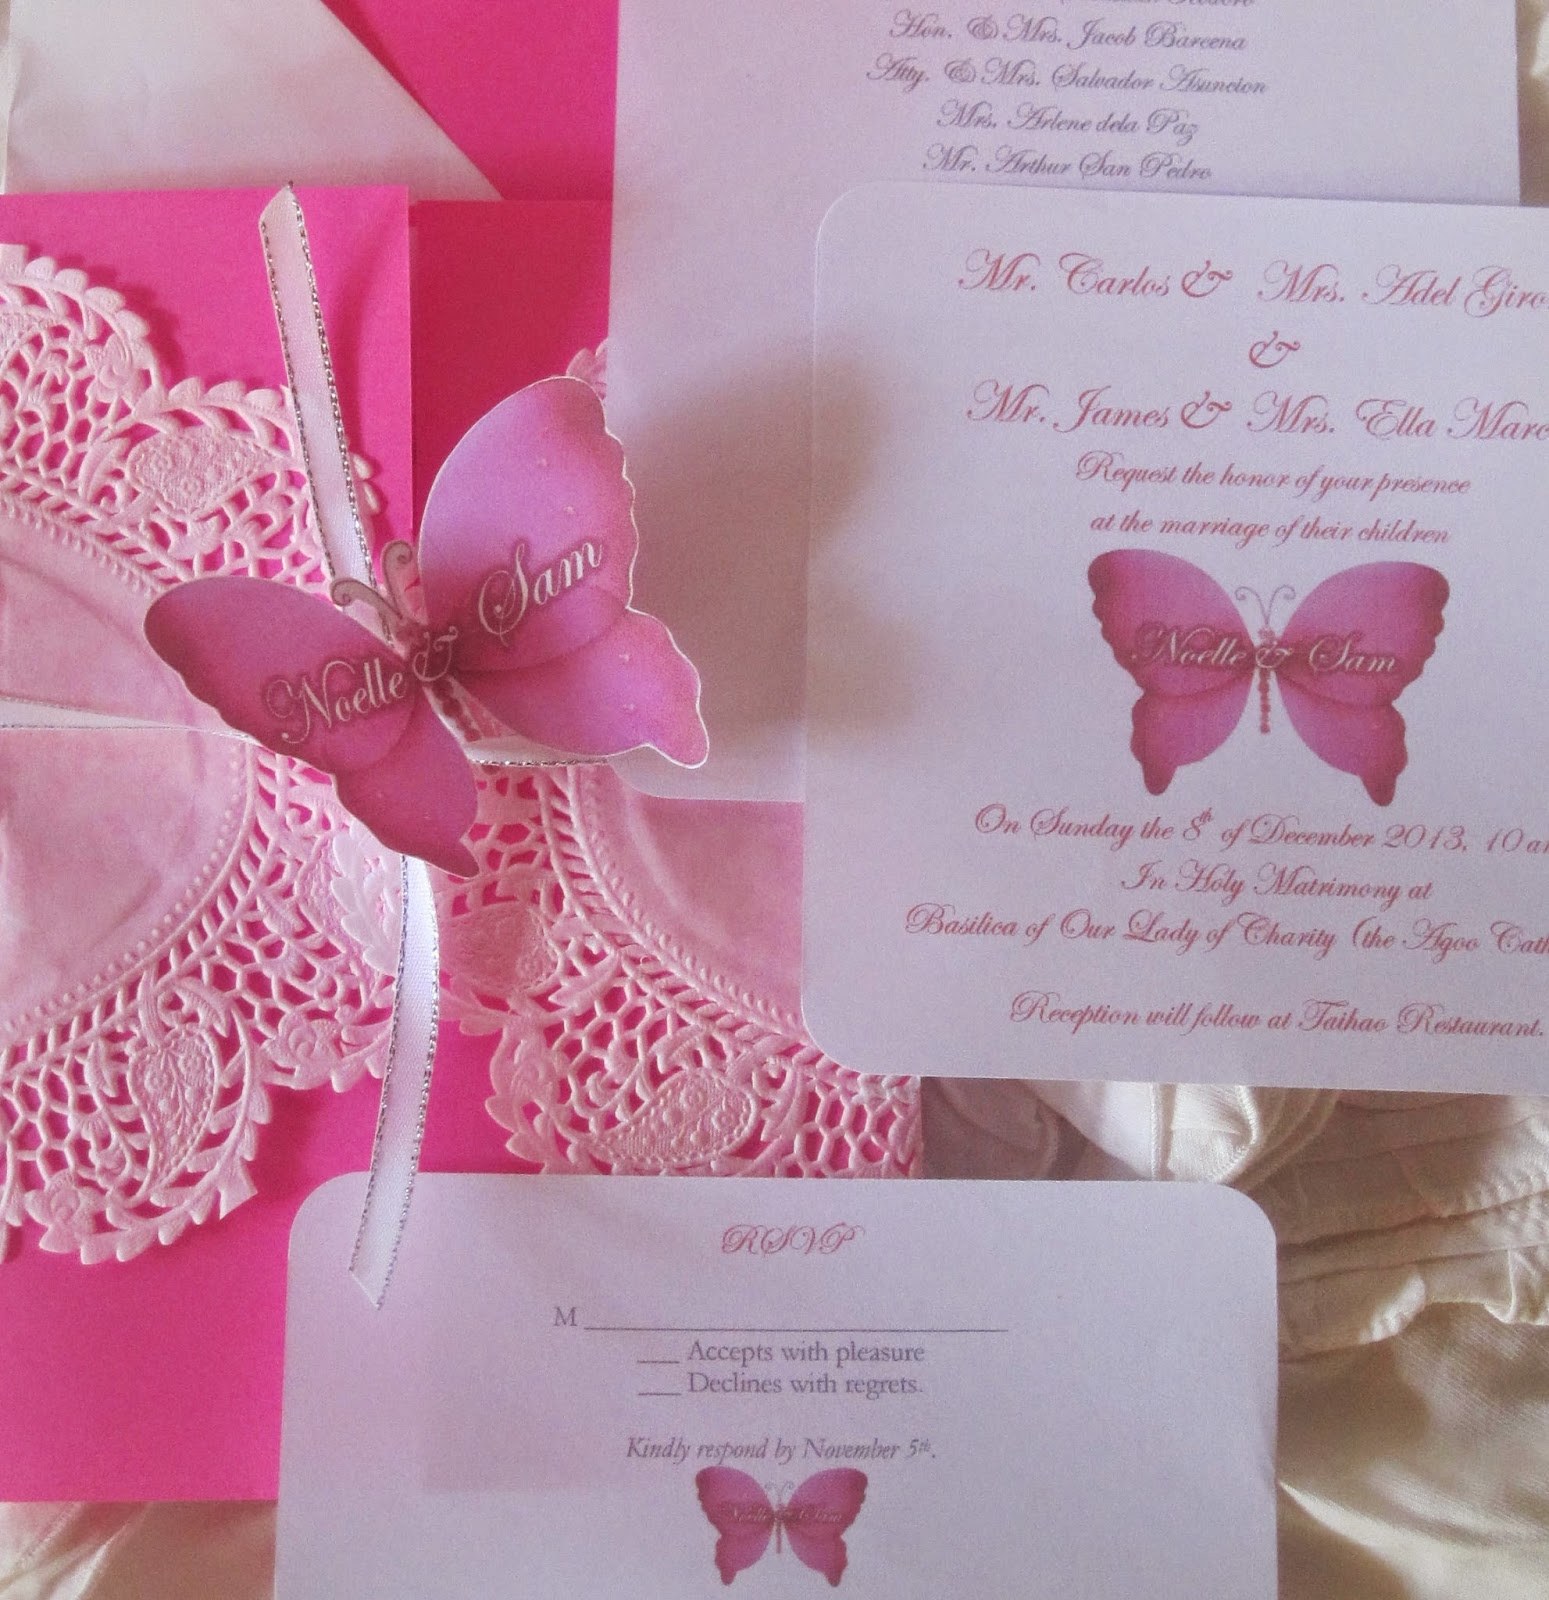 https://www.etsy.com/listing/185451270/handstamped-butterfly-invitation?ref=shop_home_active_13